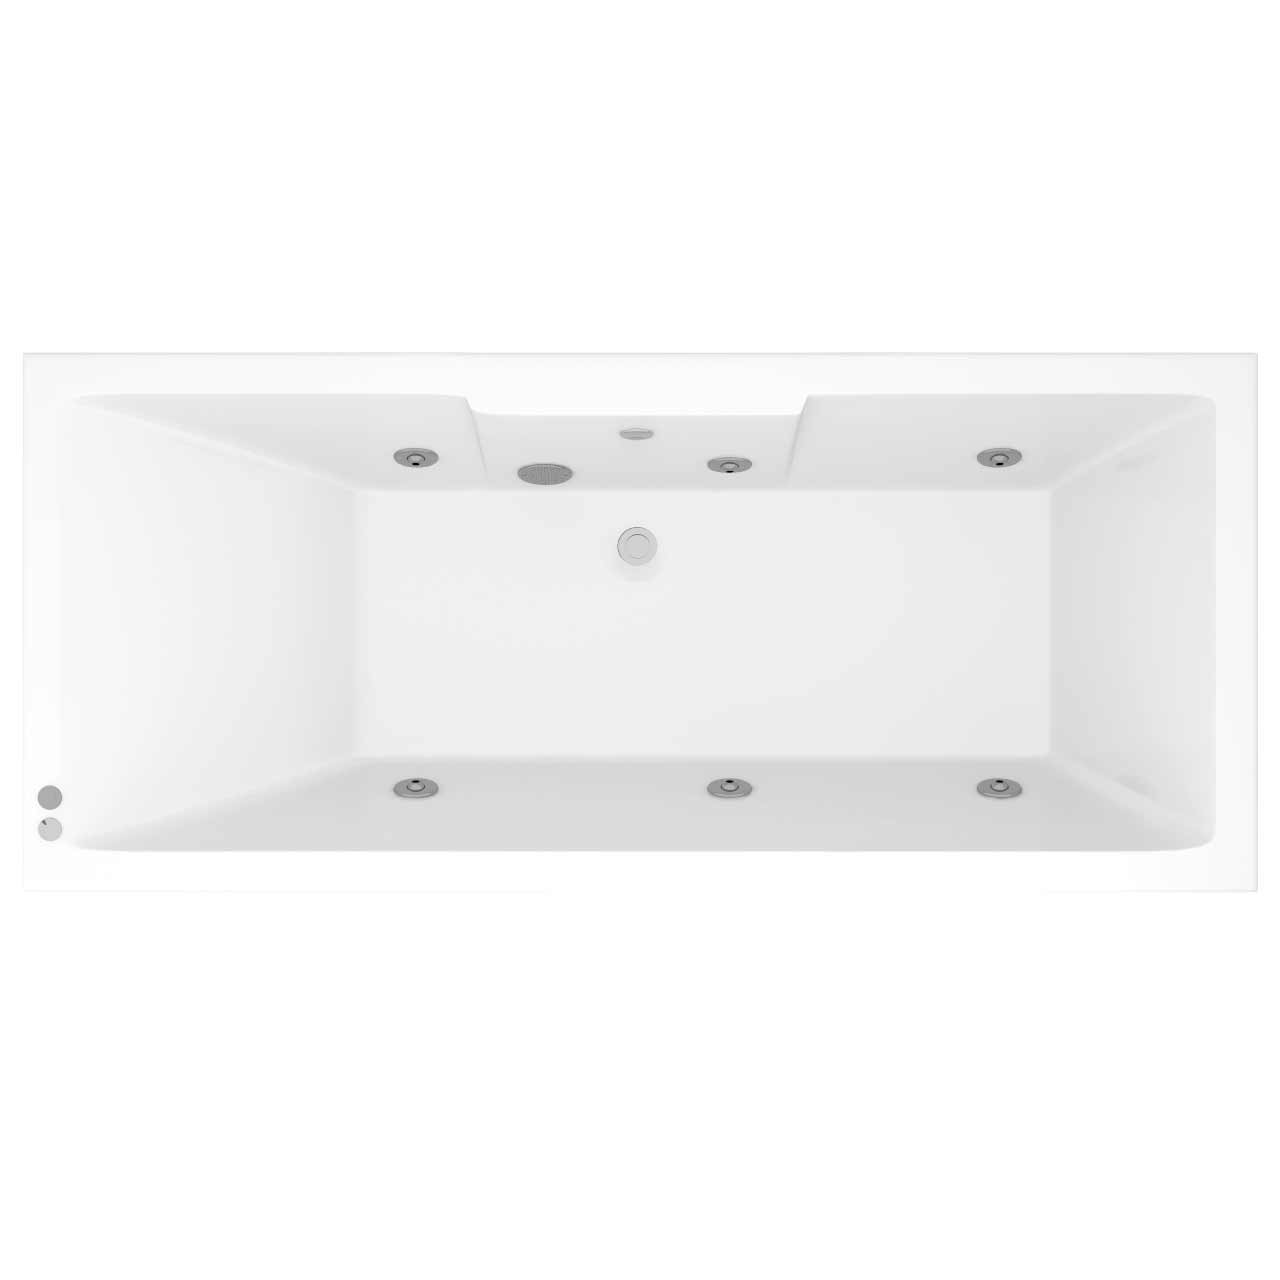 Legend Right Hand 6 Jet Chrome V-Tec Whirlpool Bath 1700x750mm